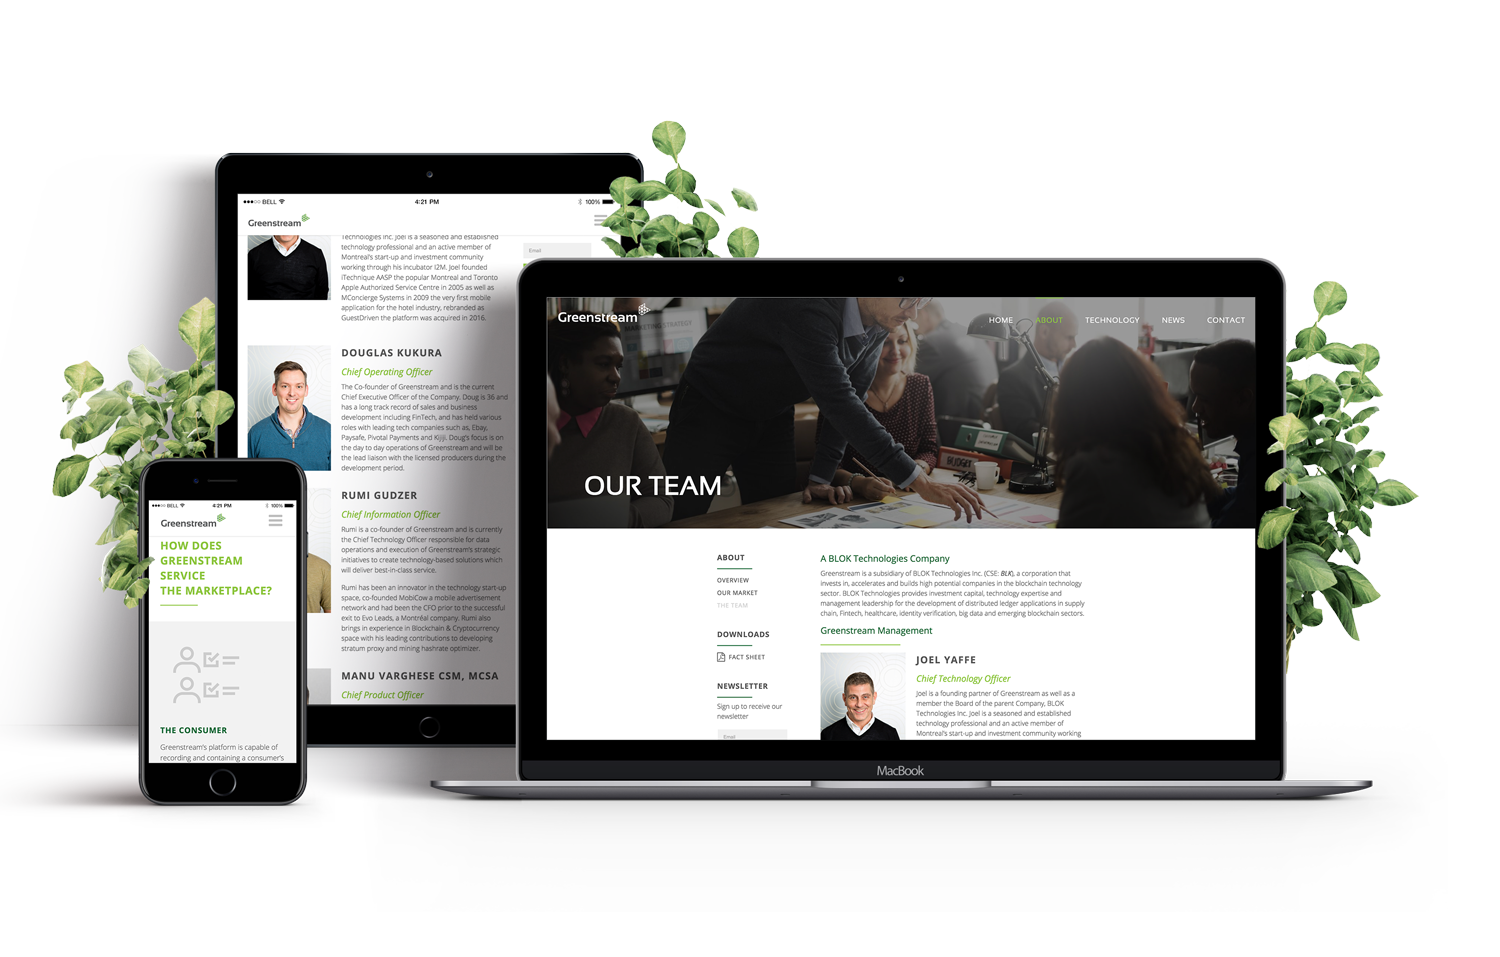 HOVR Marketing Greenstream Team About Page Web Design Display